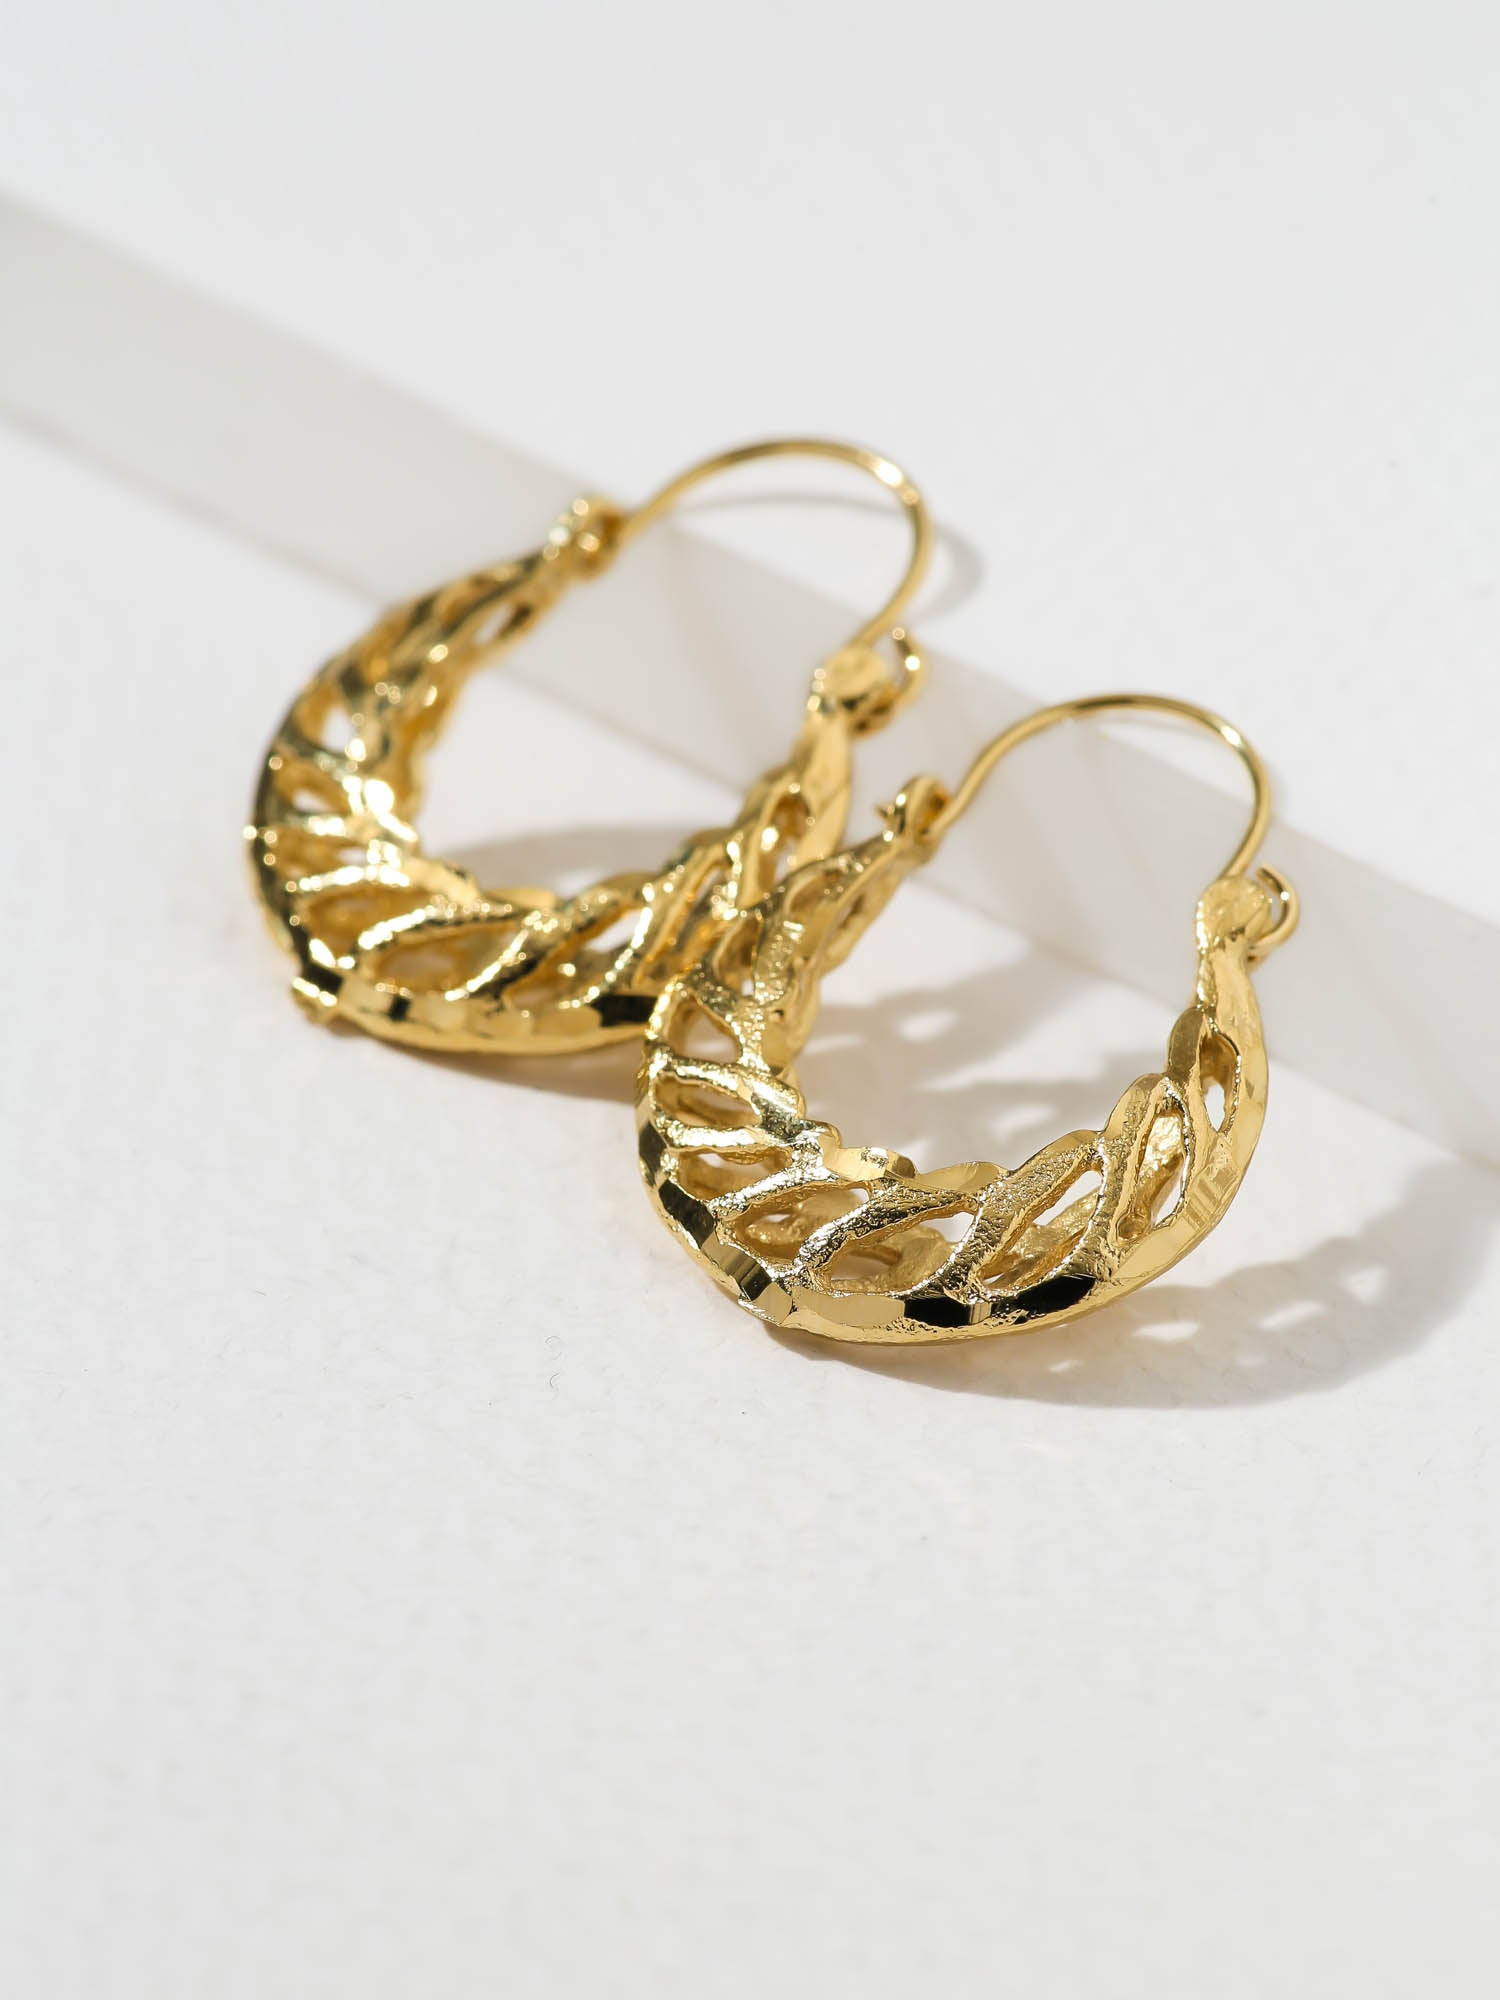 The Chaaya Hoop Earrings